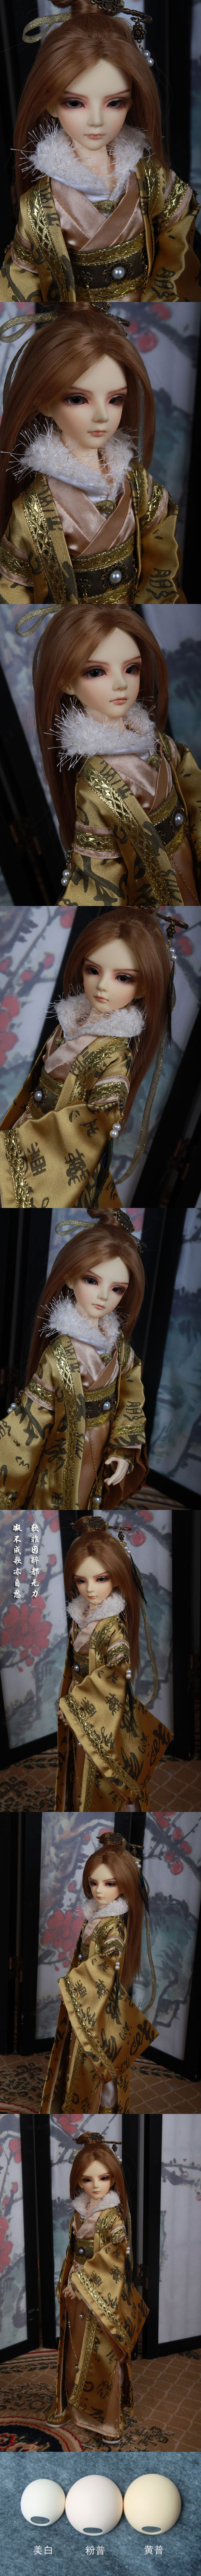 BJD Ning Ge Boy 43.5cm Boll-jointed doll